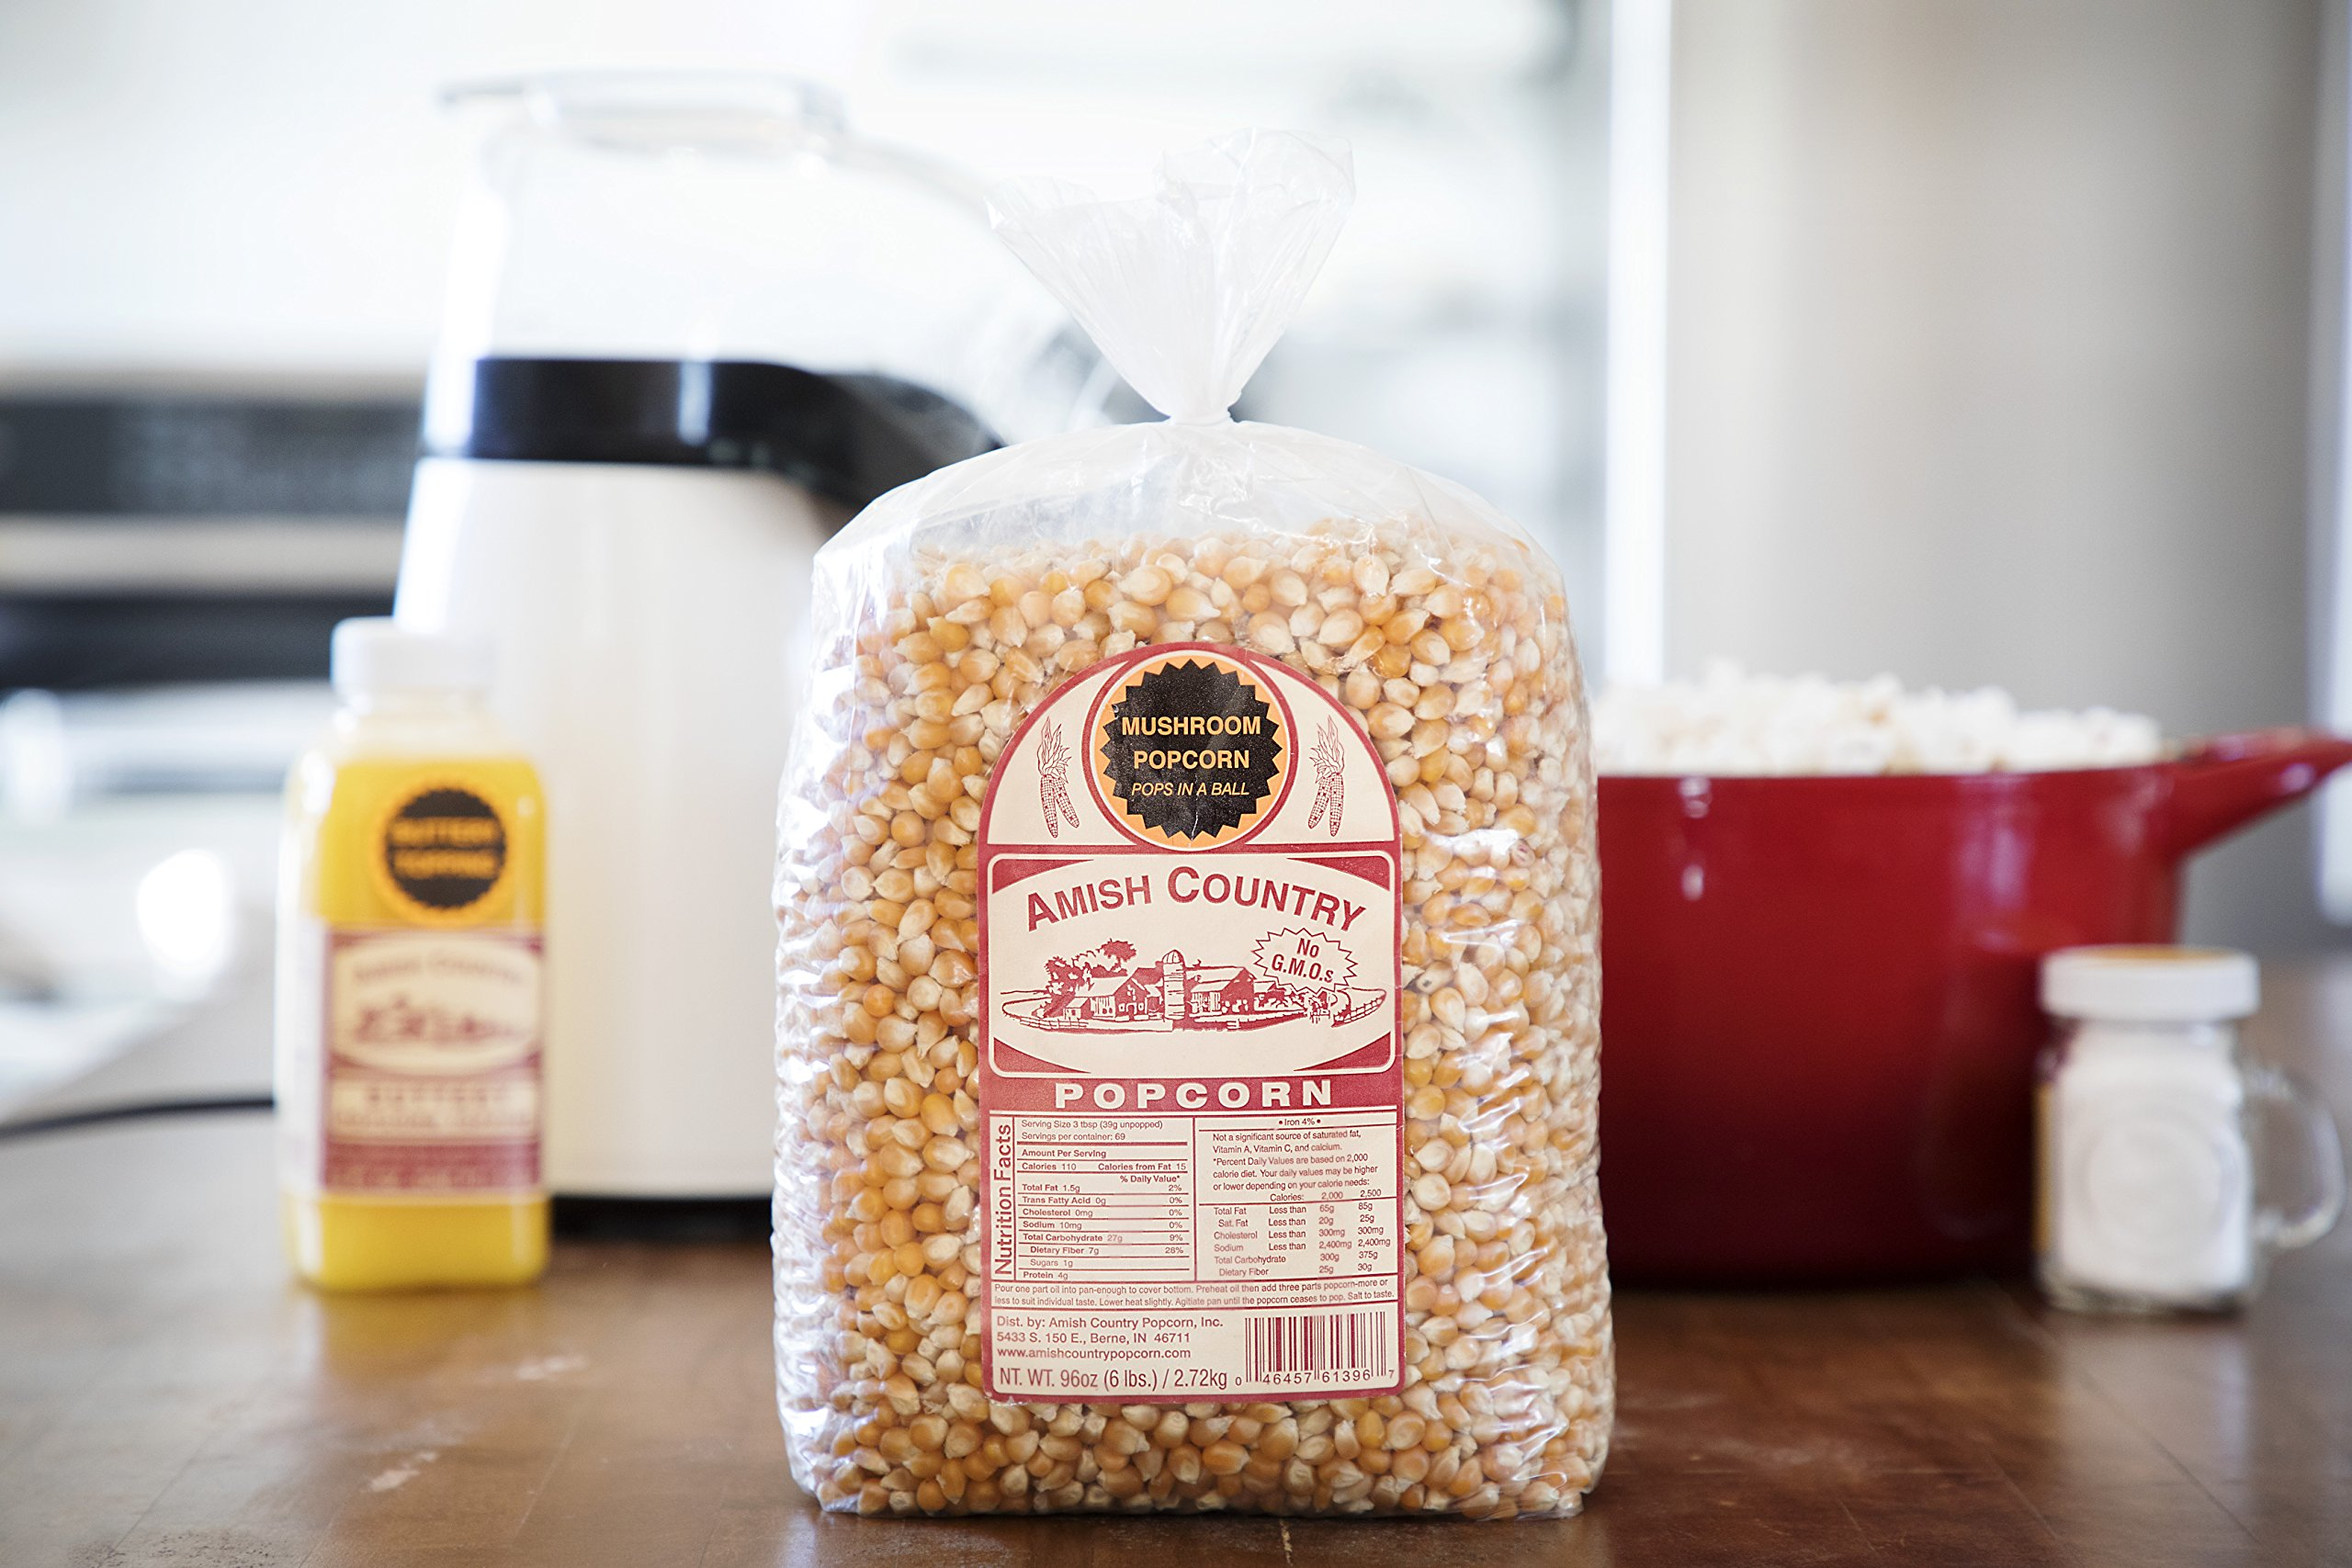 Amish Country Popcorn - Mushroom Popcorn (6 Pound Bag) - Old Fashioned, Non GMO, Gluten Free, Microwaveable, Stovetop and Air Popper Friendly - with Recipe Guide by Amish Country Popcorn (Image #5)